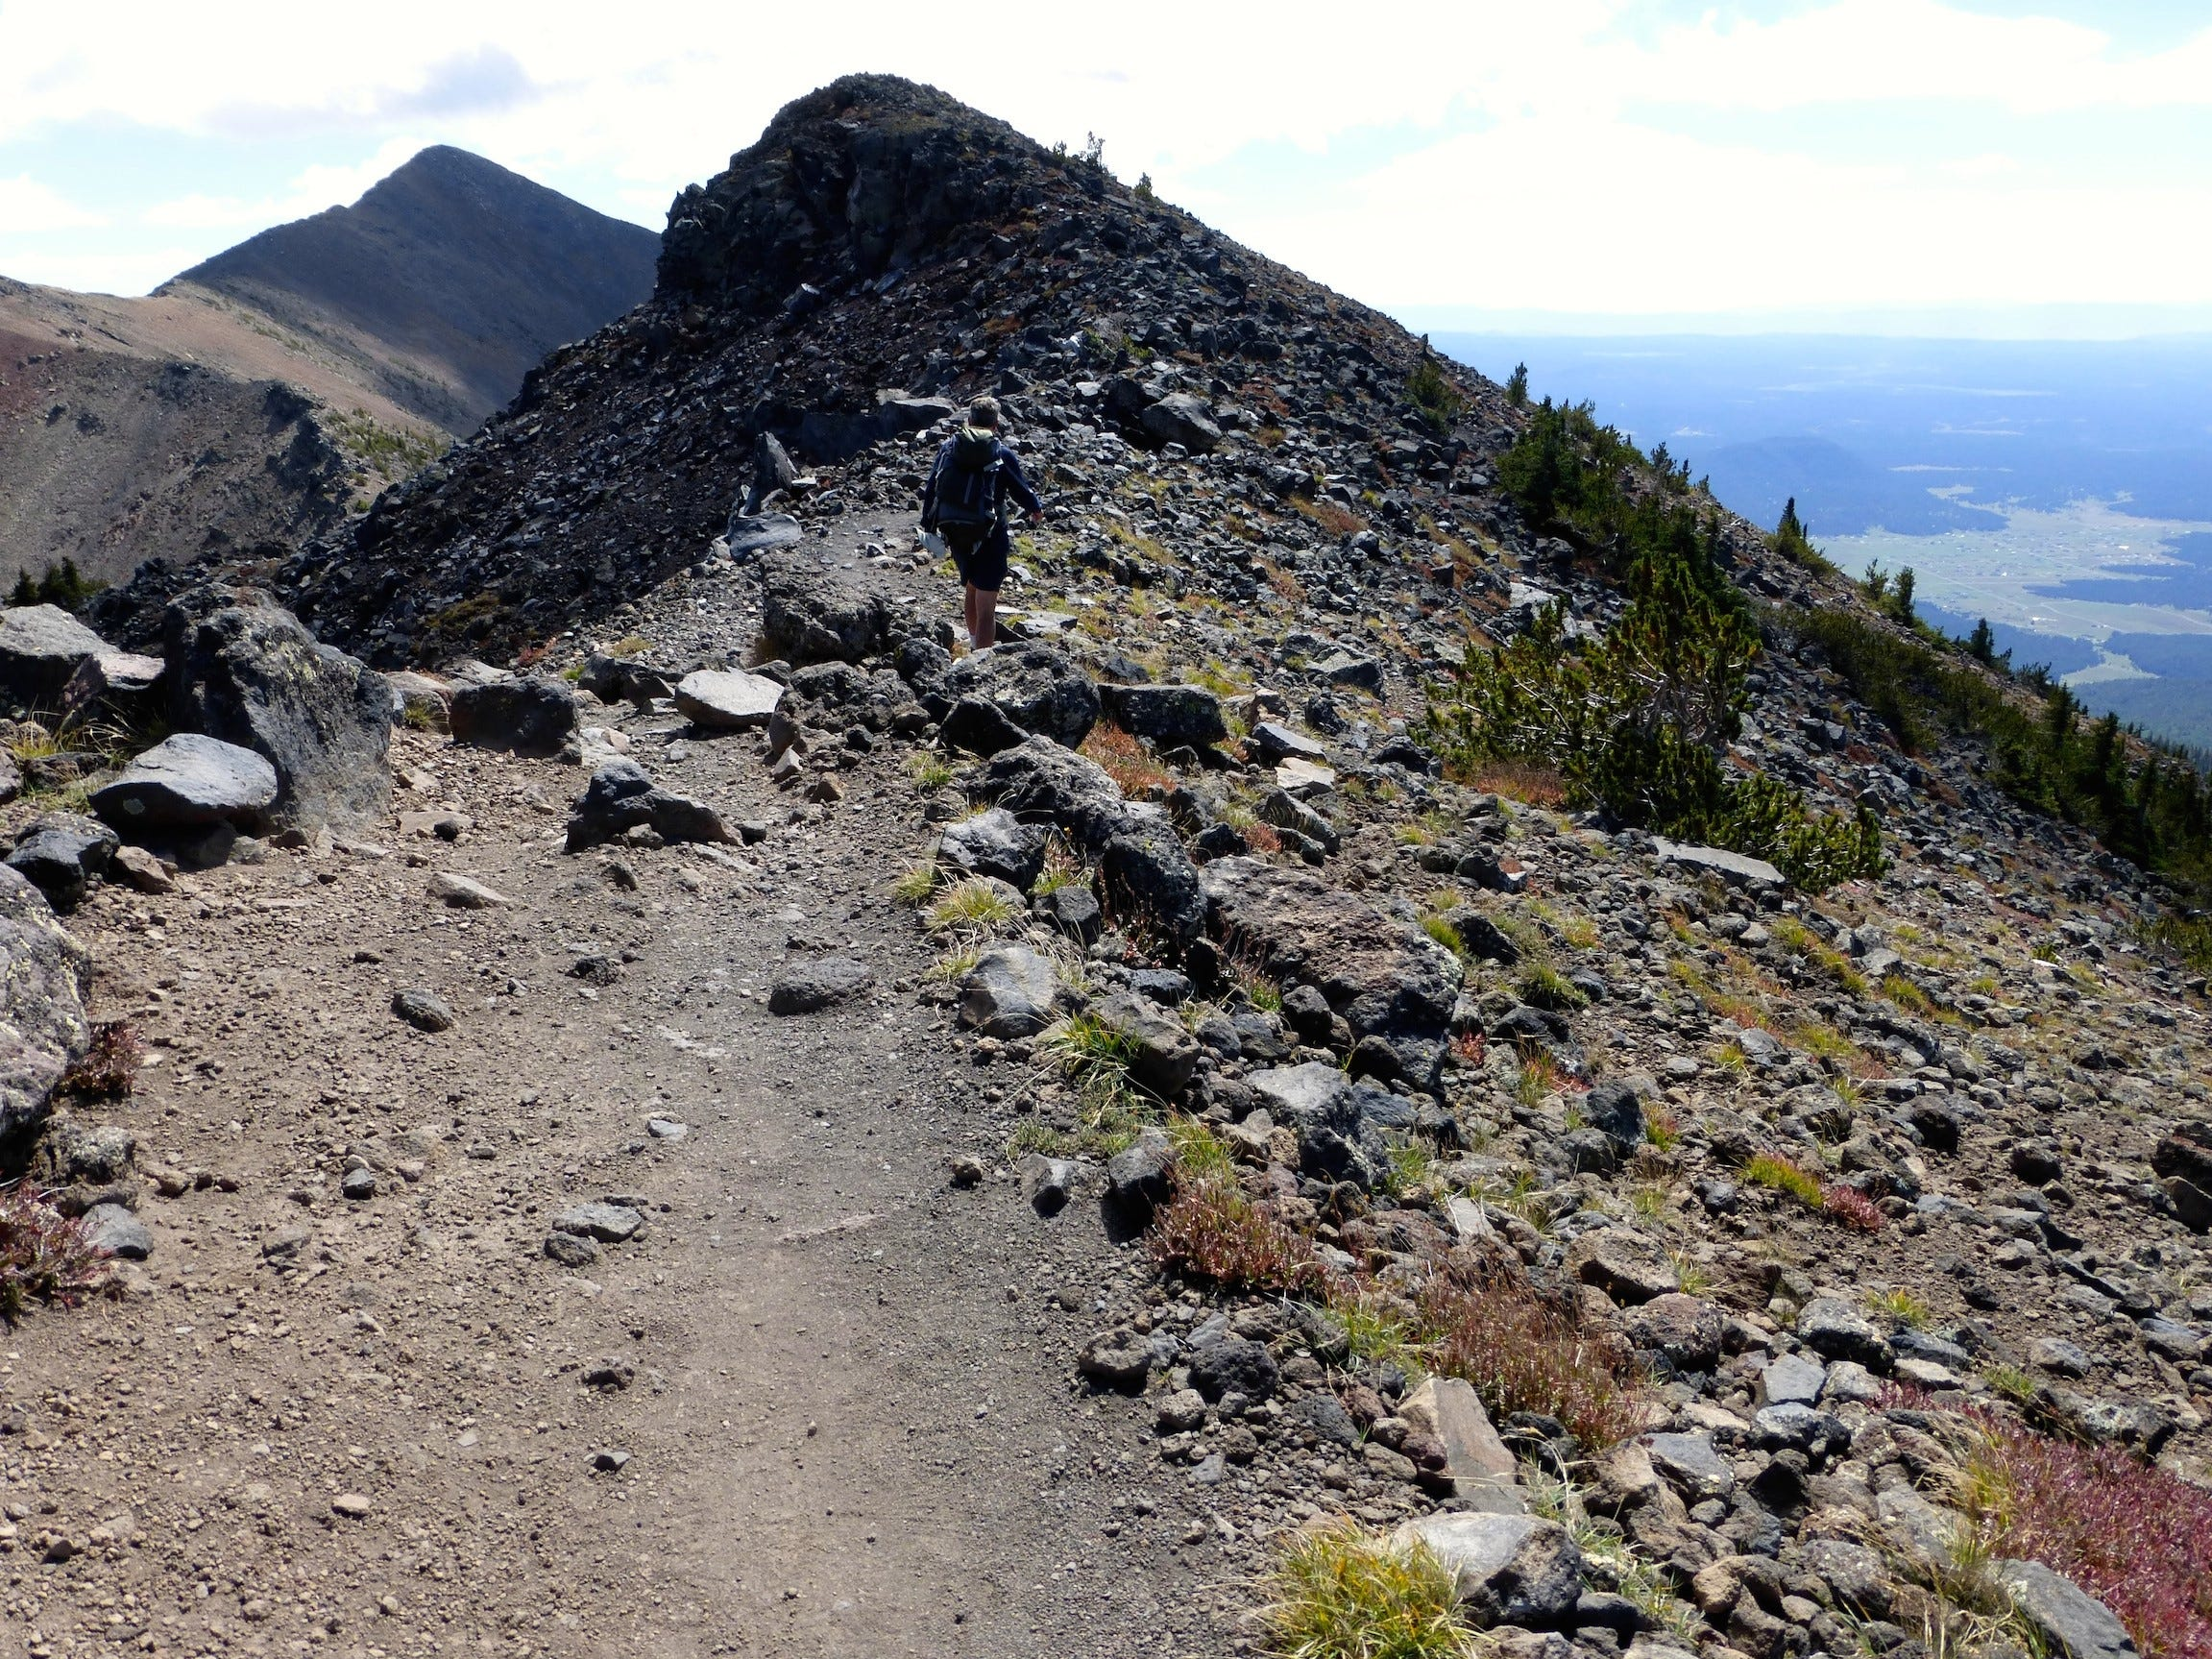 The strenuous trail to the top of Humphreys Peak climbs above the tree line and crosses the only alpine tundra in Arizona.